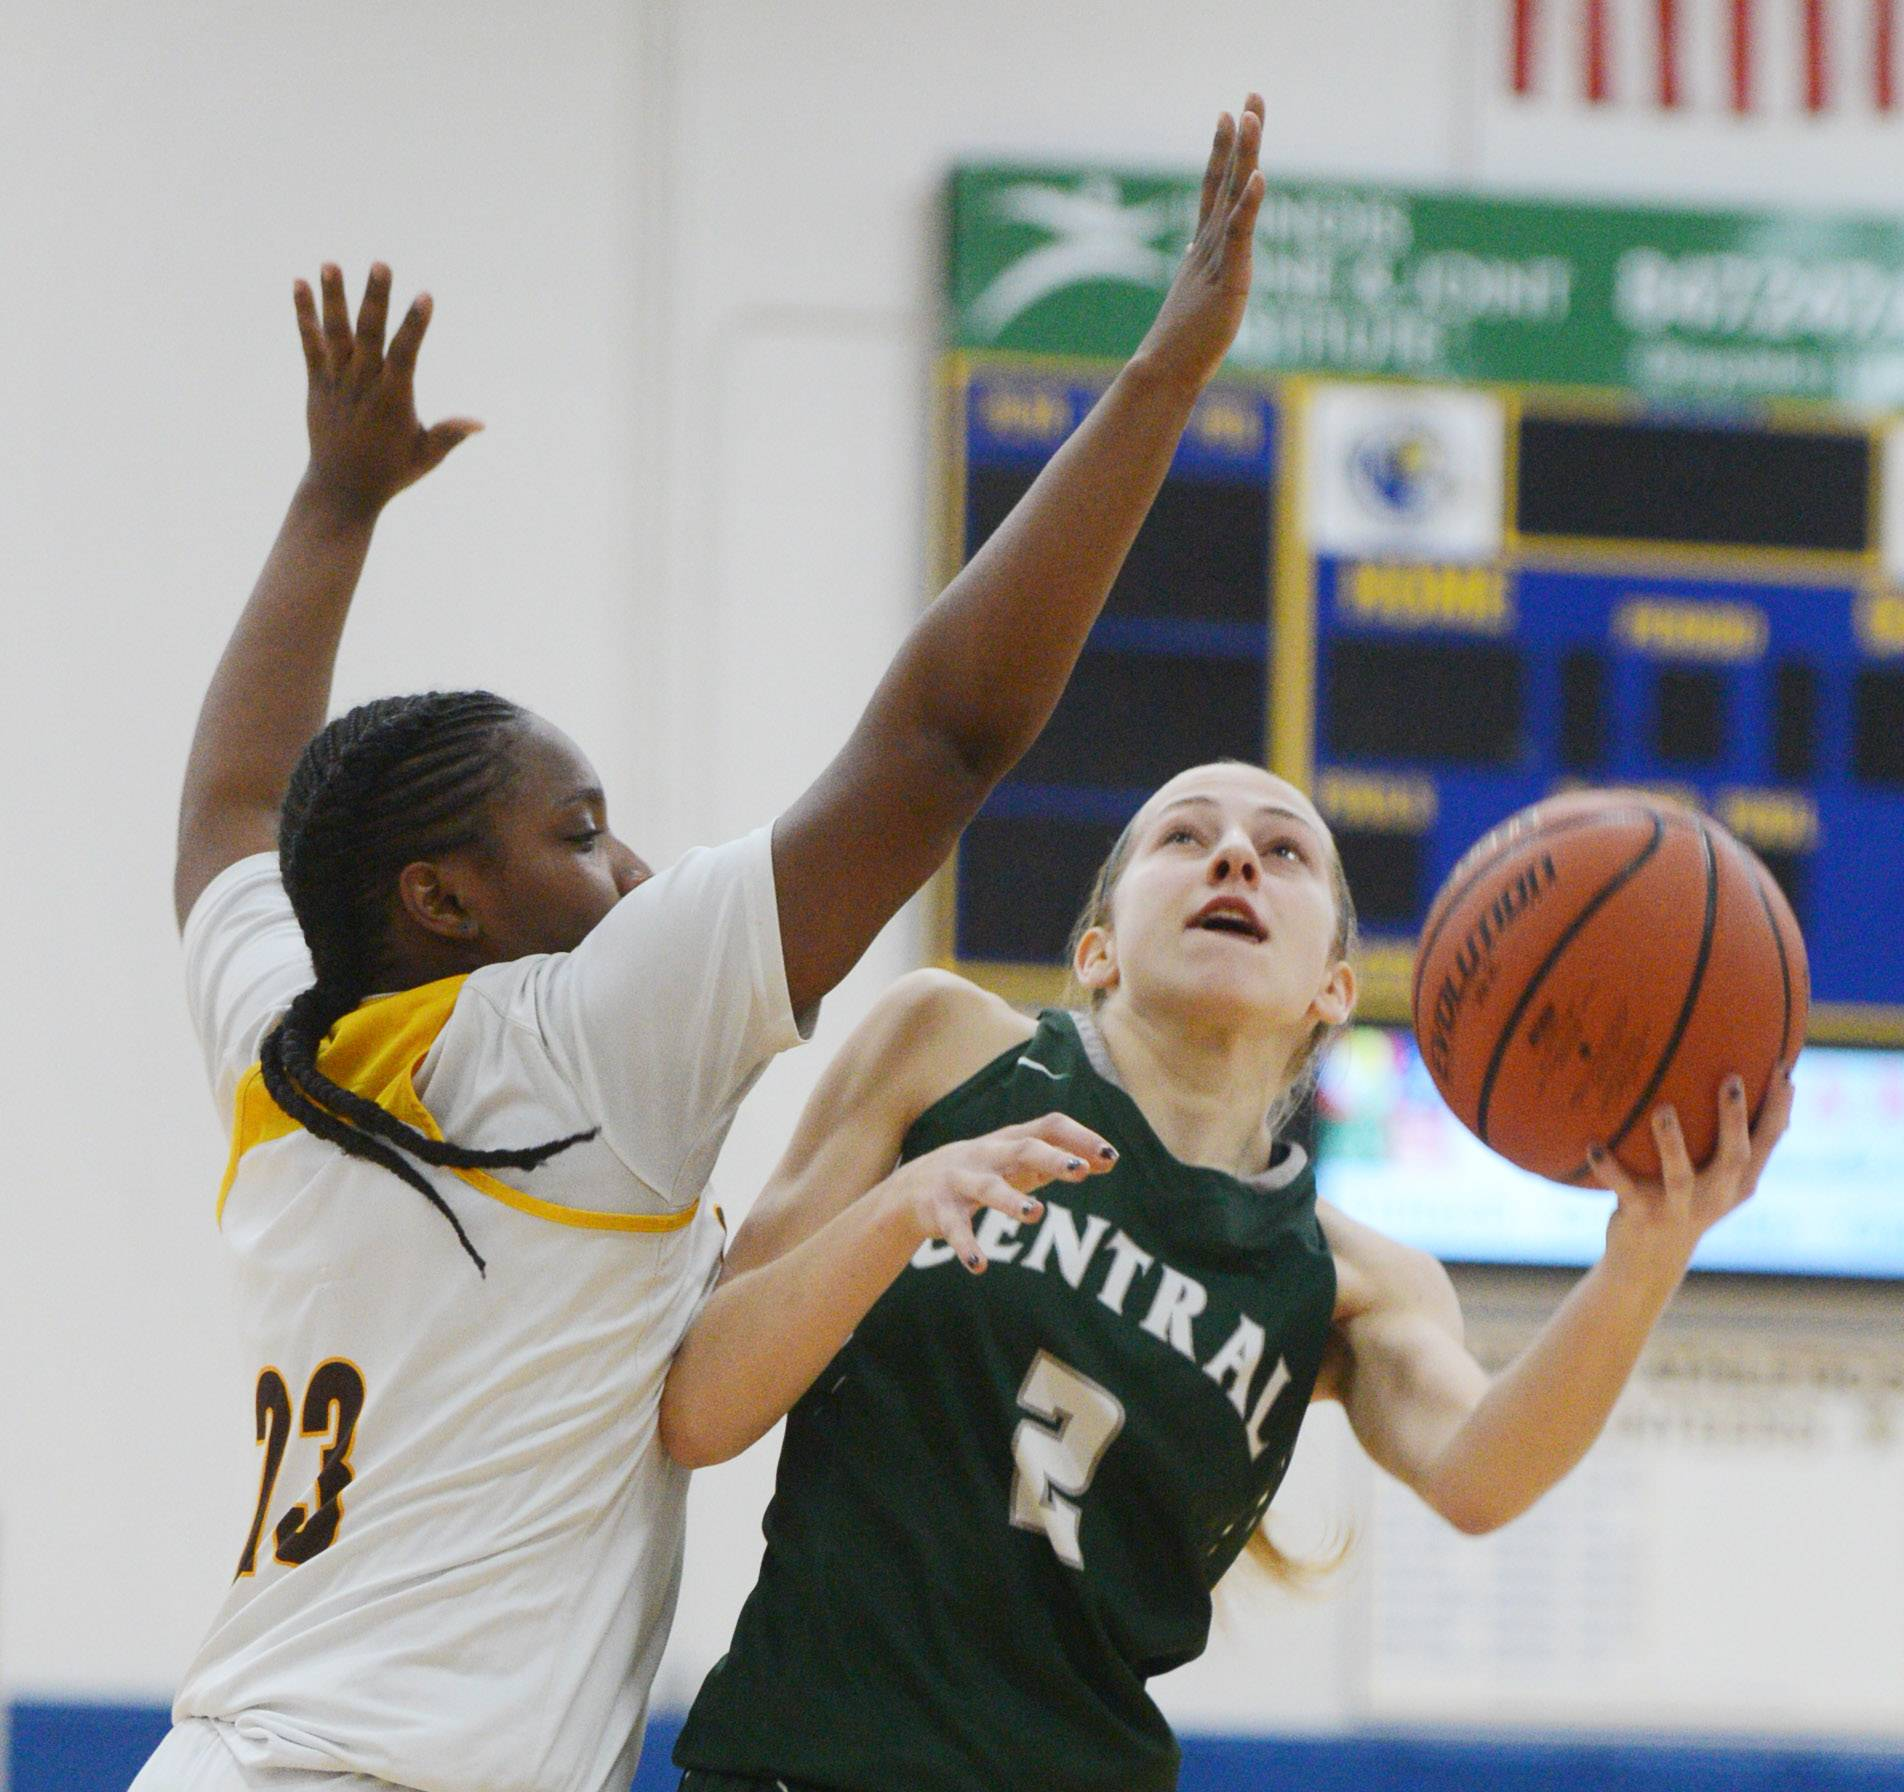 Grayslake Central's Maura Fitzgerald attempts a shot against Carmel defender Ranya Jamison during Warren Blue Devils Classic action in Gurnee on Saturday.